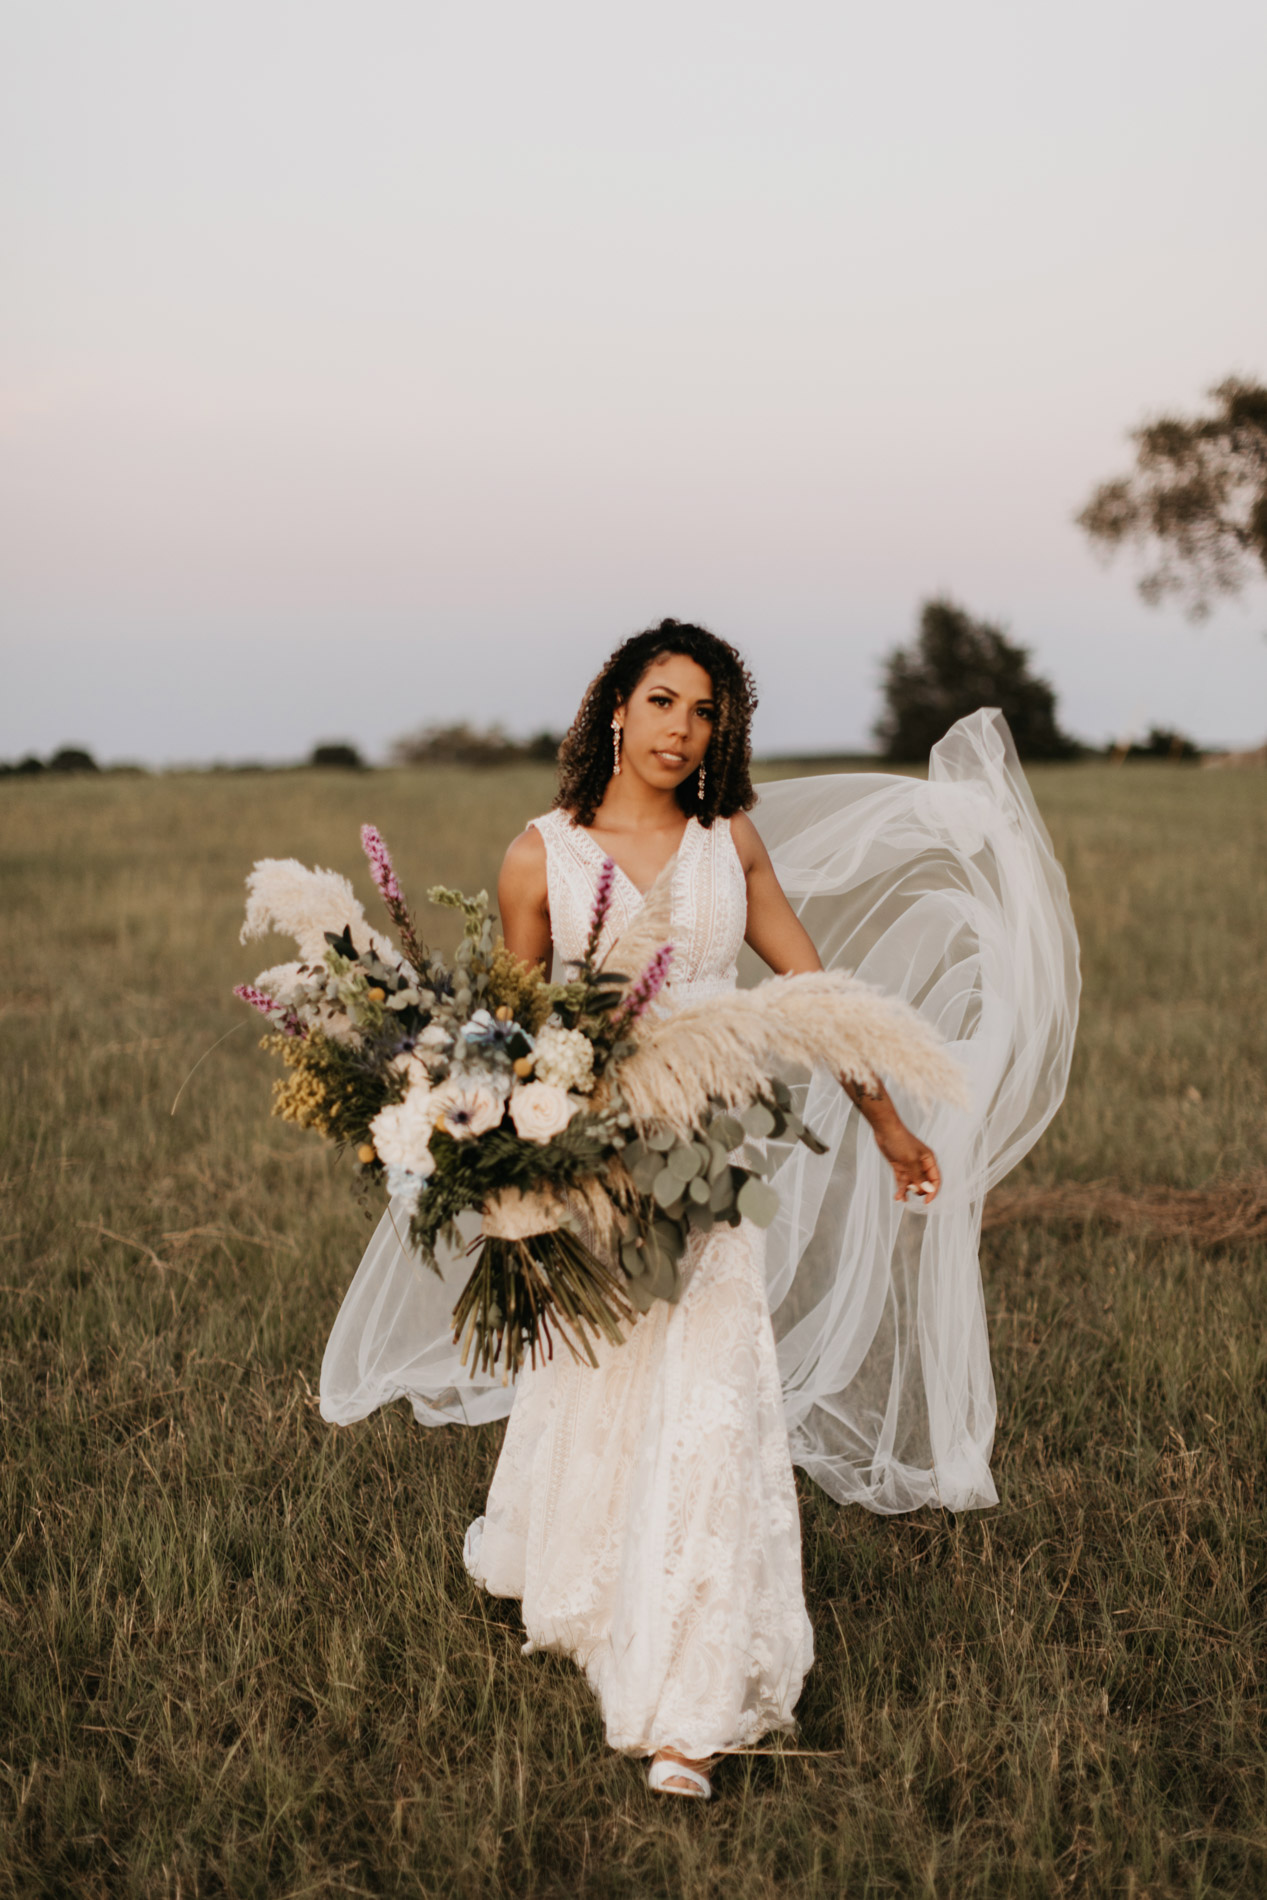 Trendy bohemian bride on her wedding day